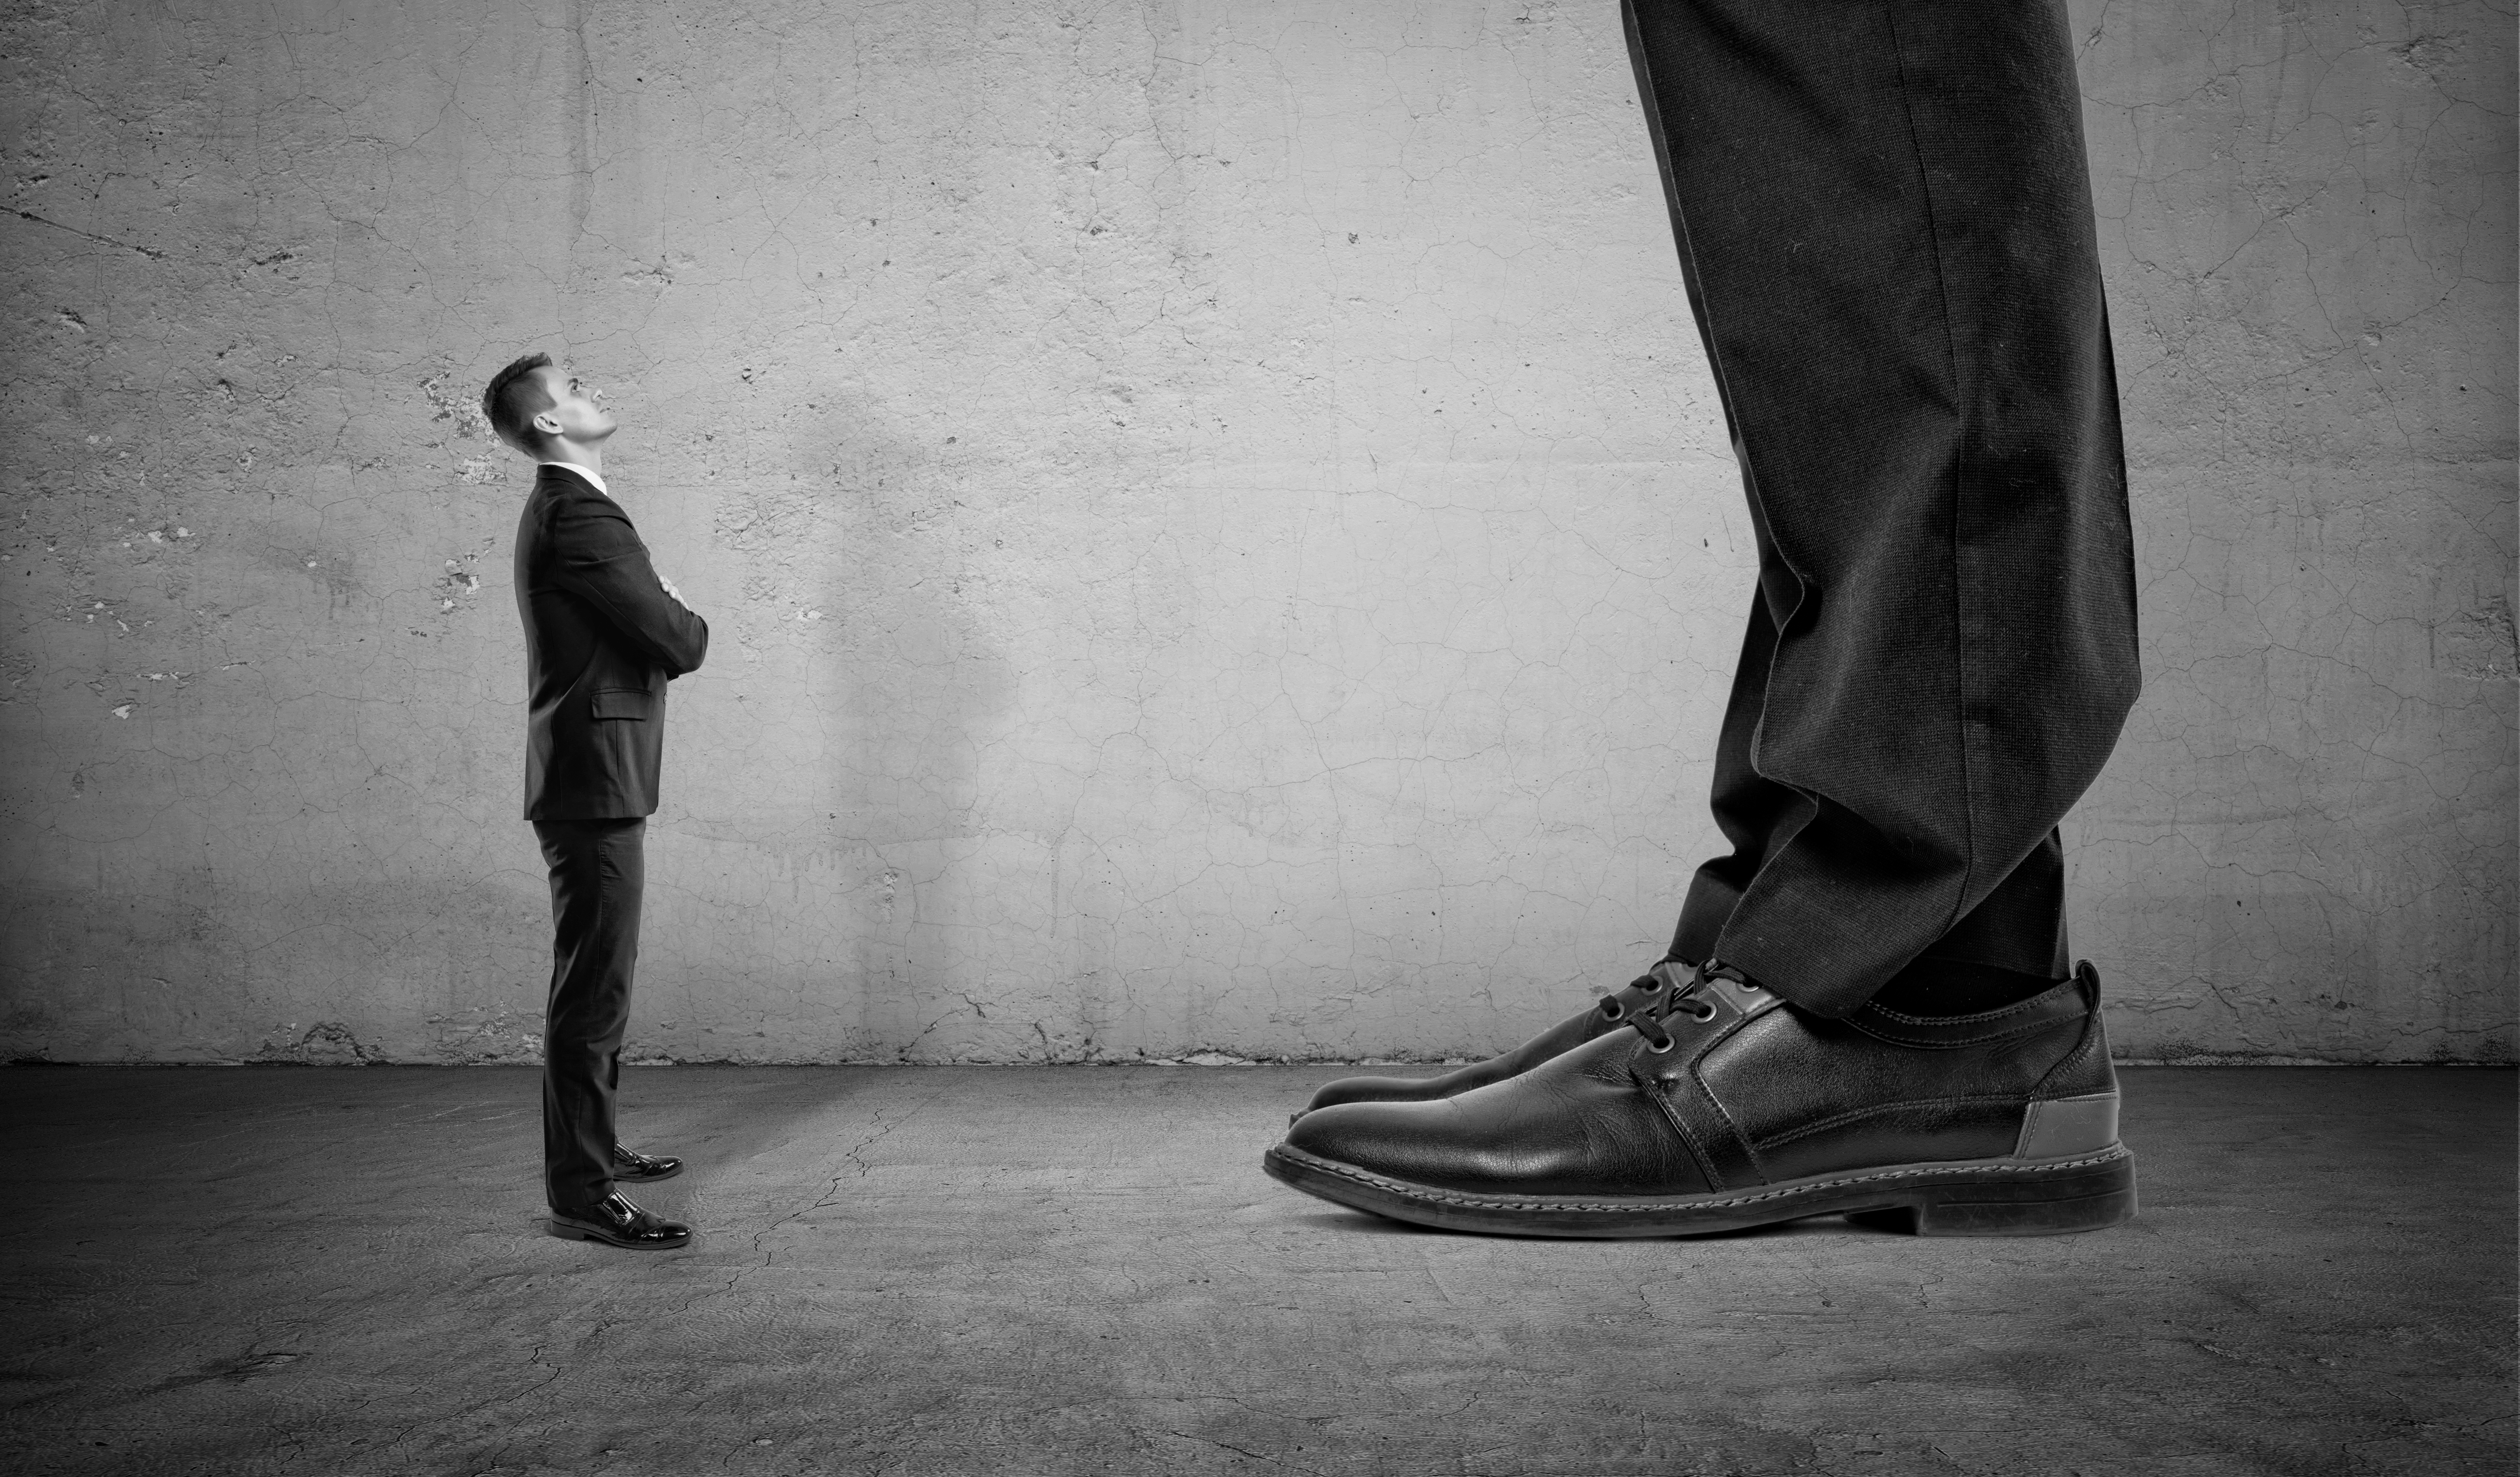 Tiny businessman looking up on huge legs of another man